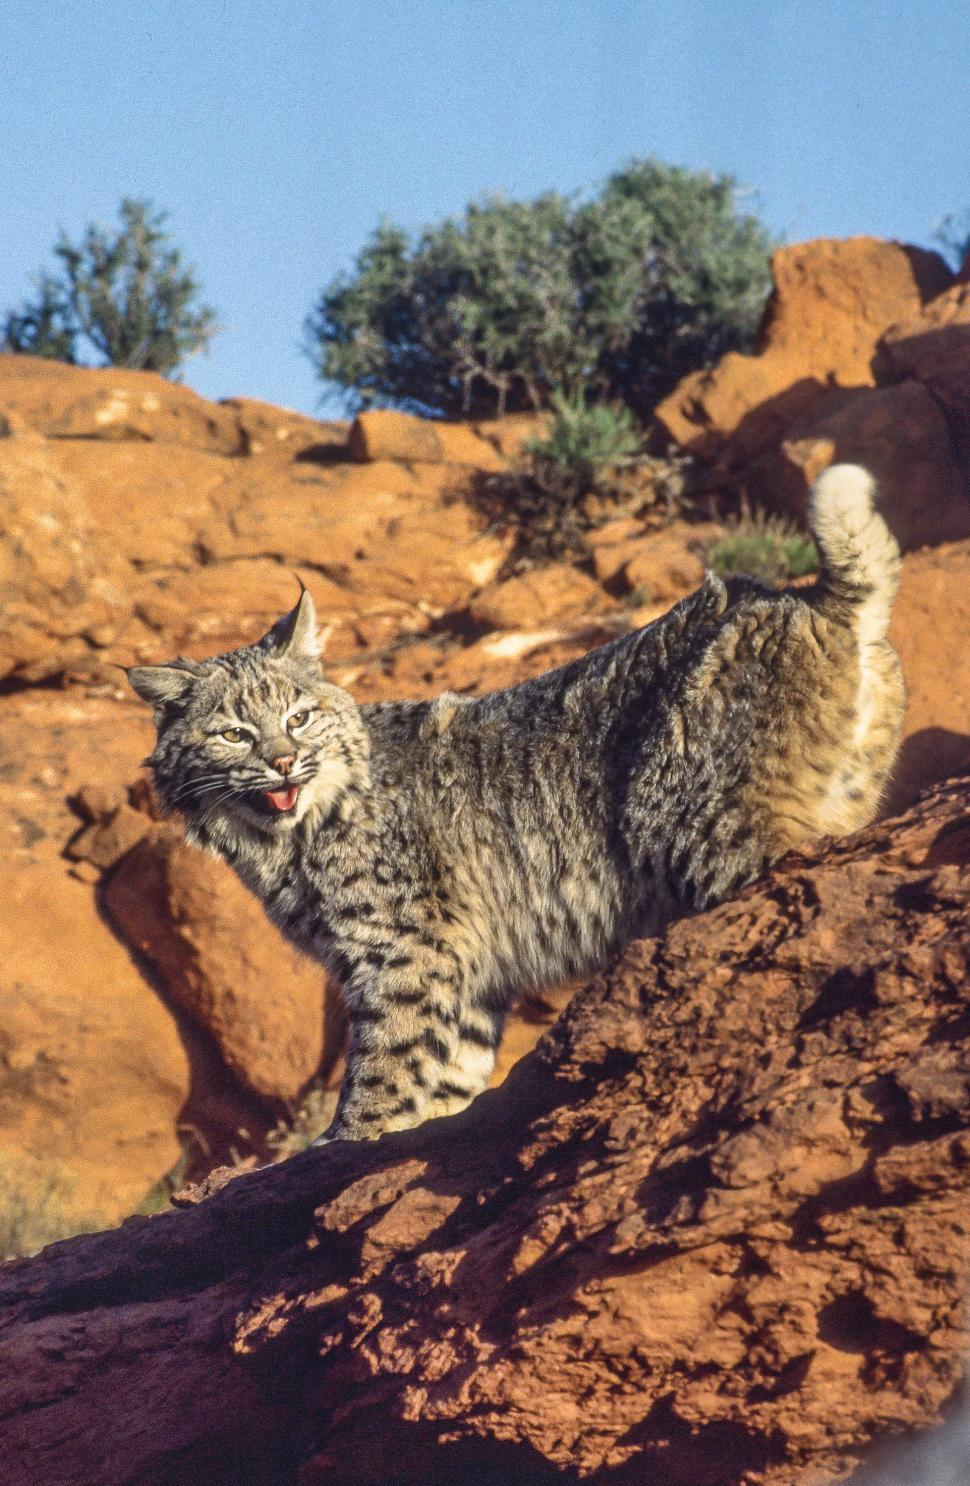 Download Free Stock Photo of Bobcat on a rock